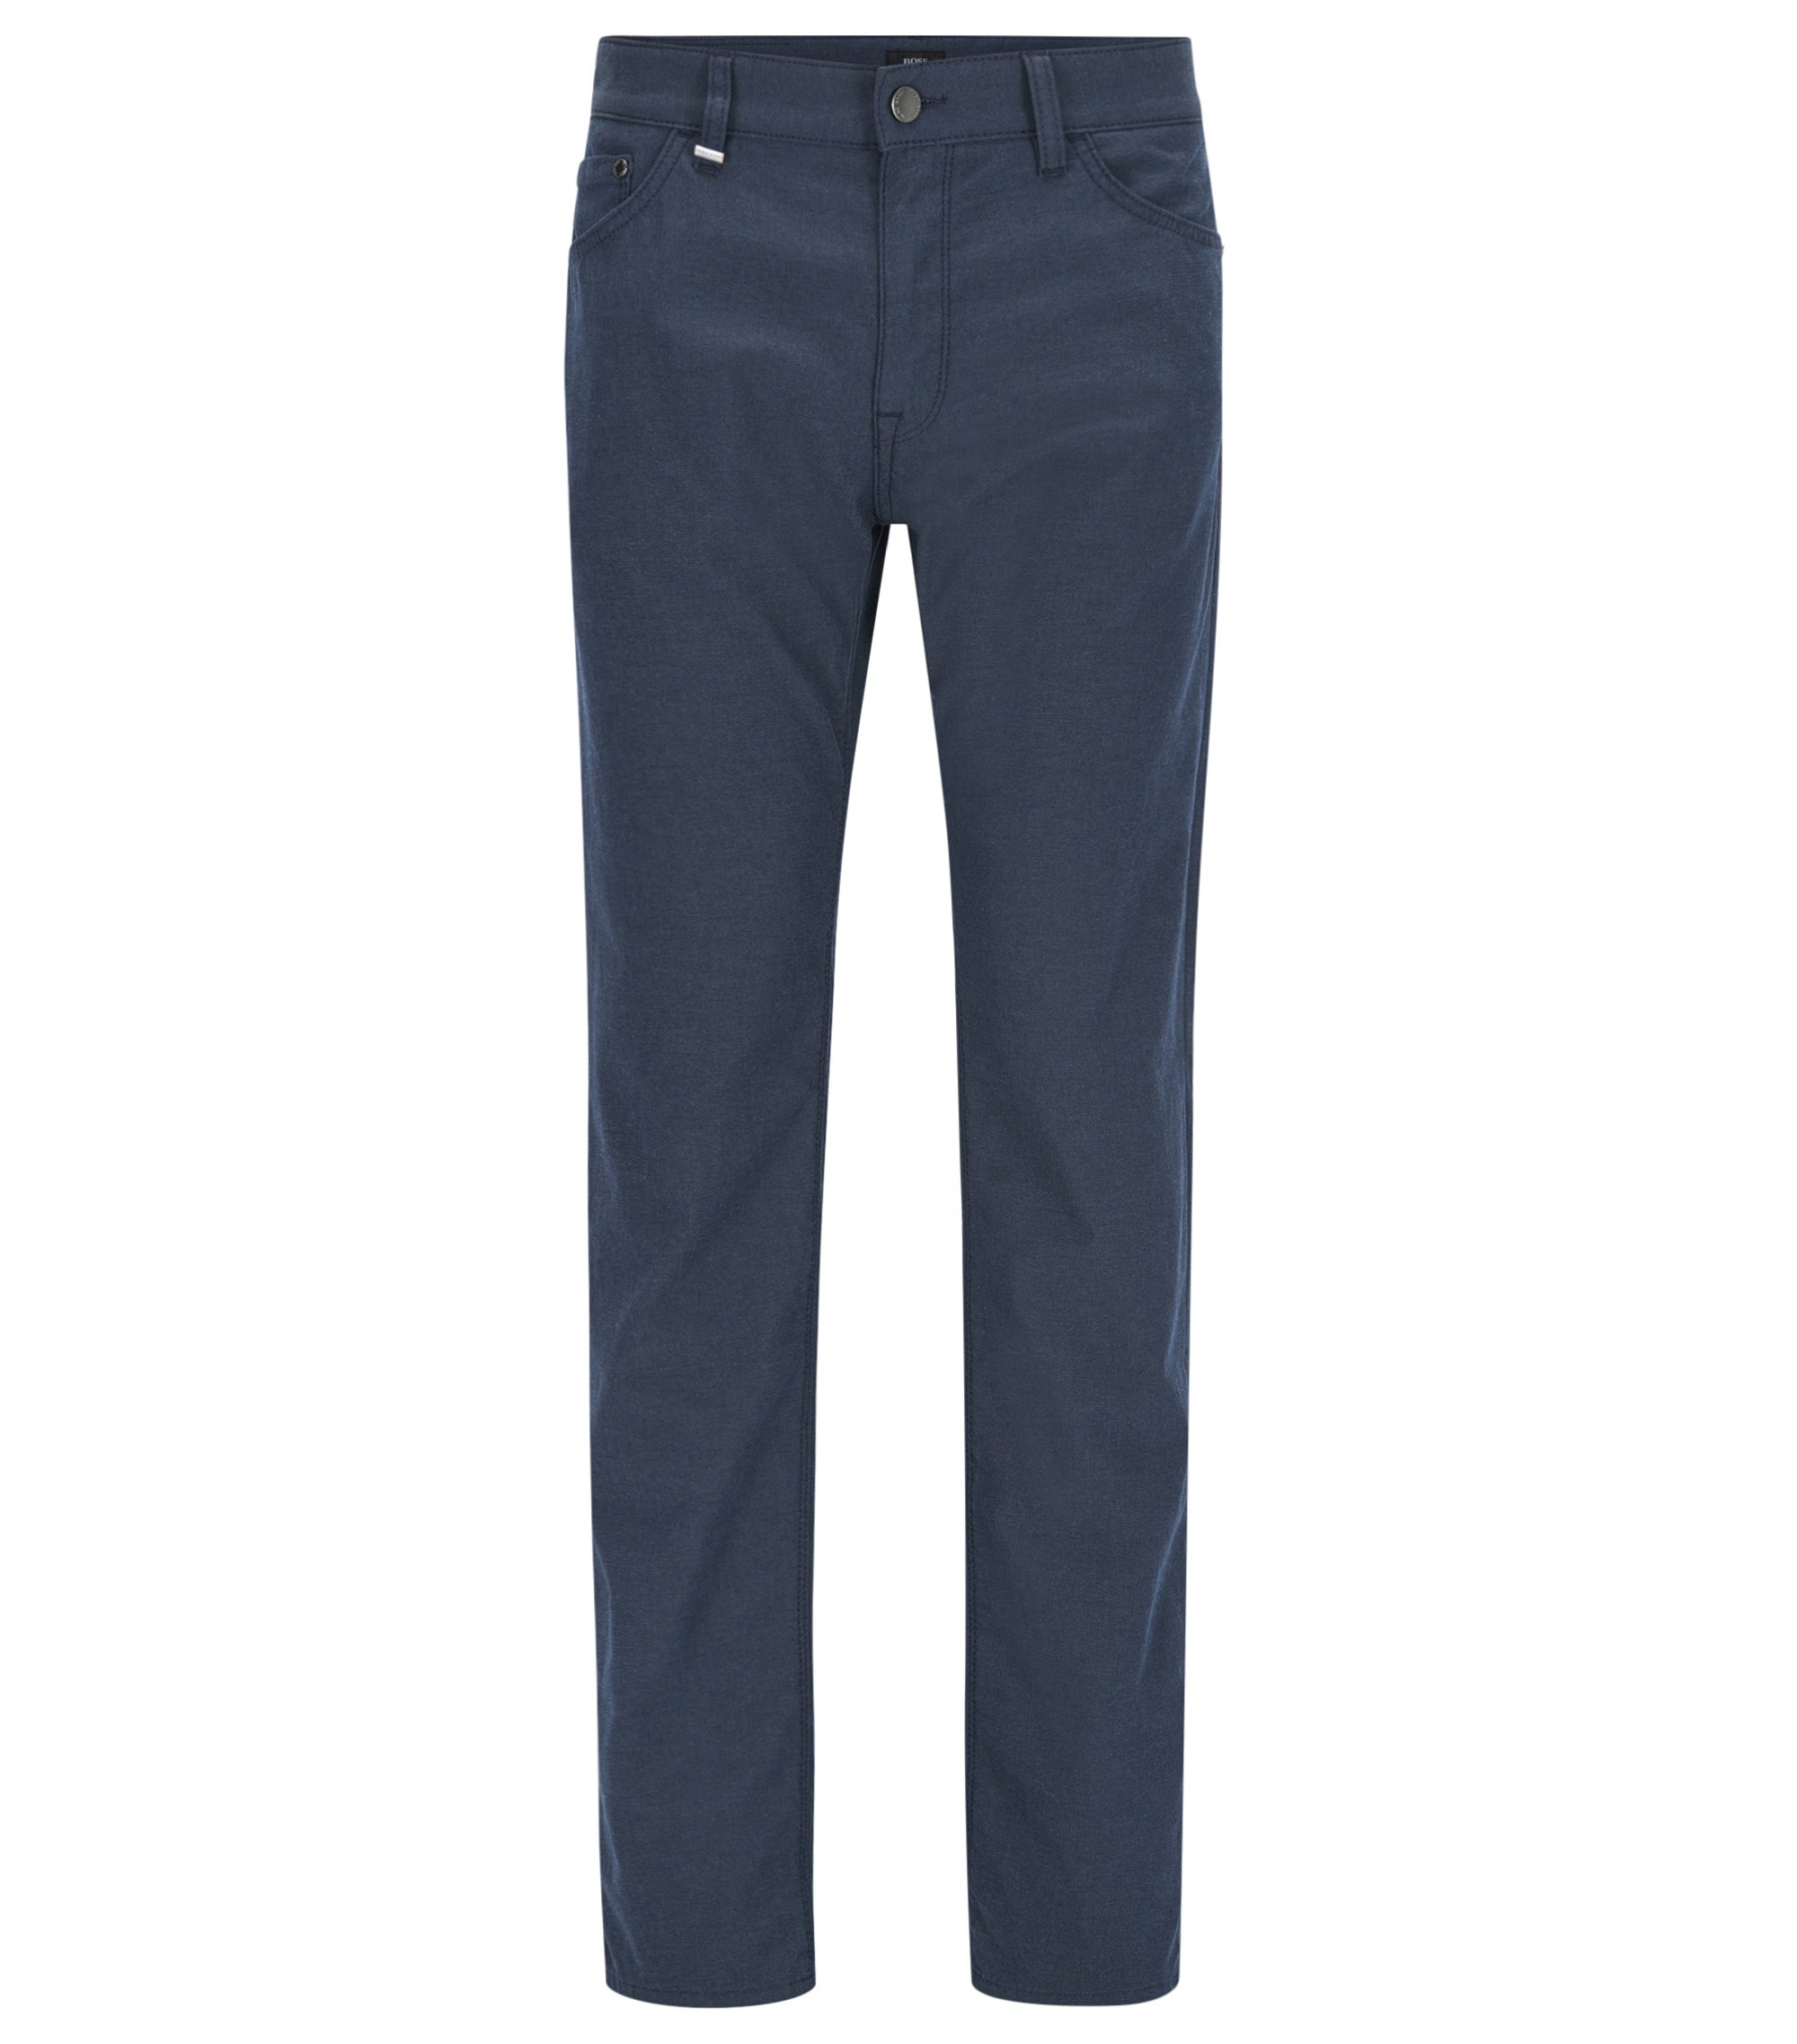 Stretch Cotton Pant, Regular Fit | Maine, Dark Blue